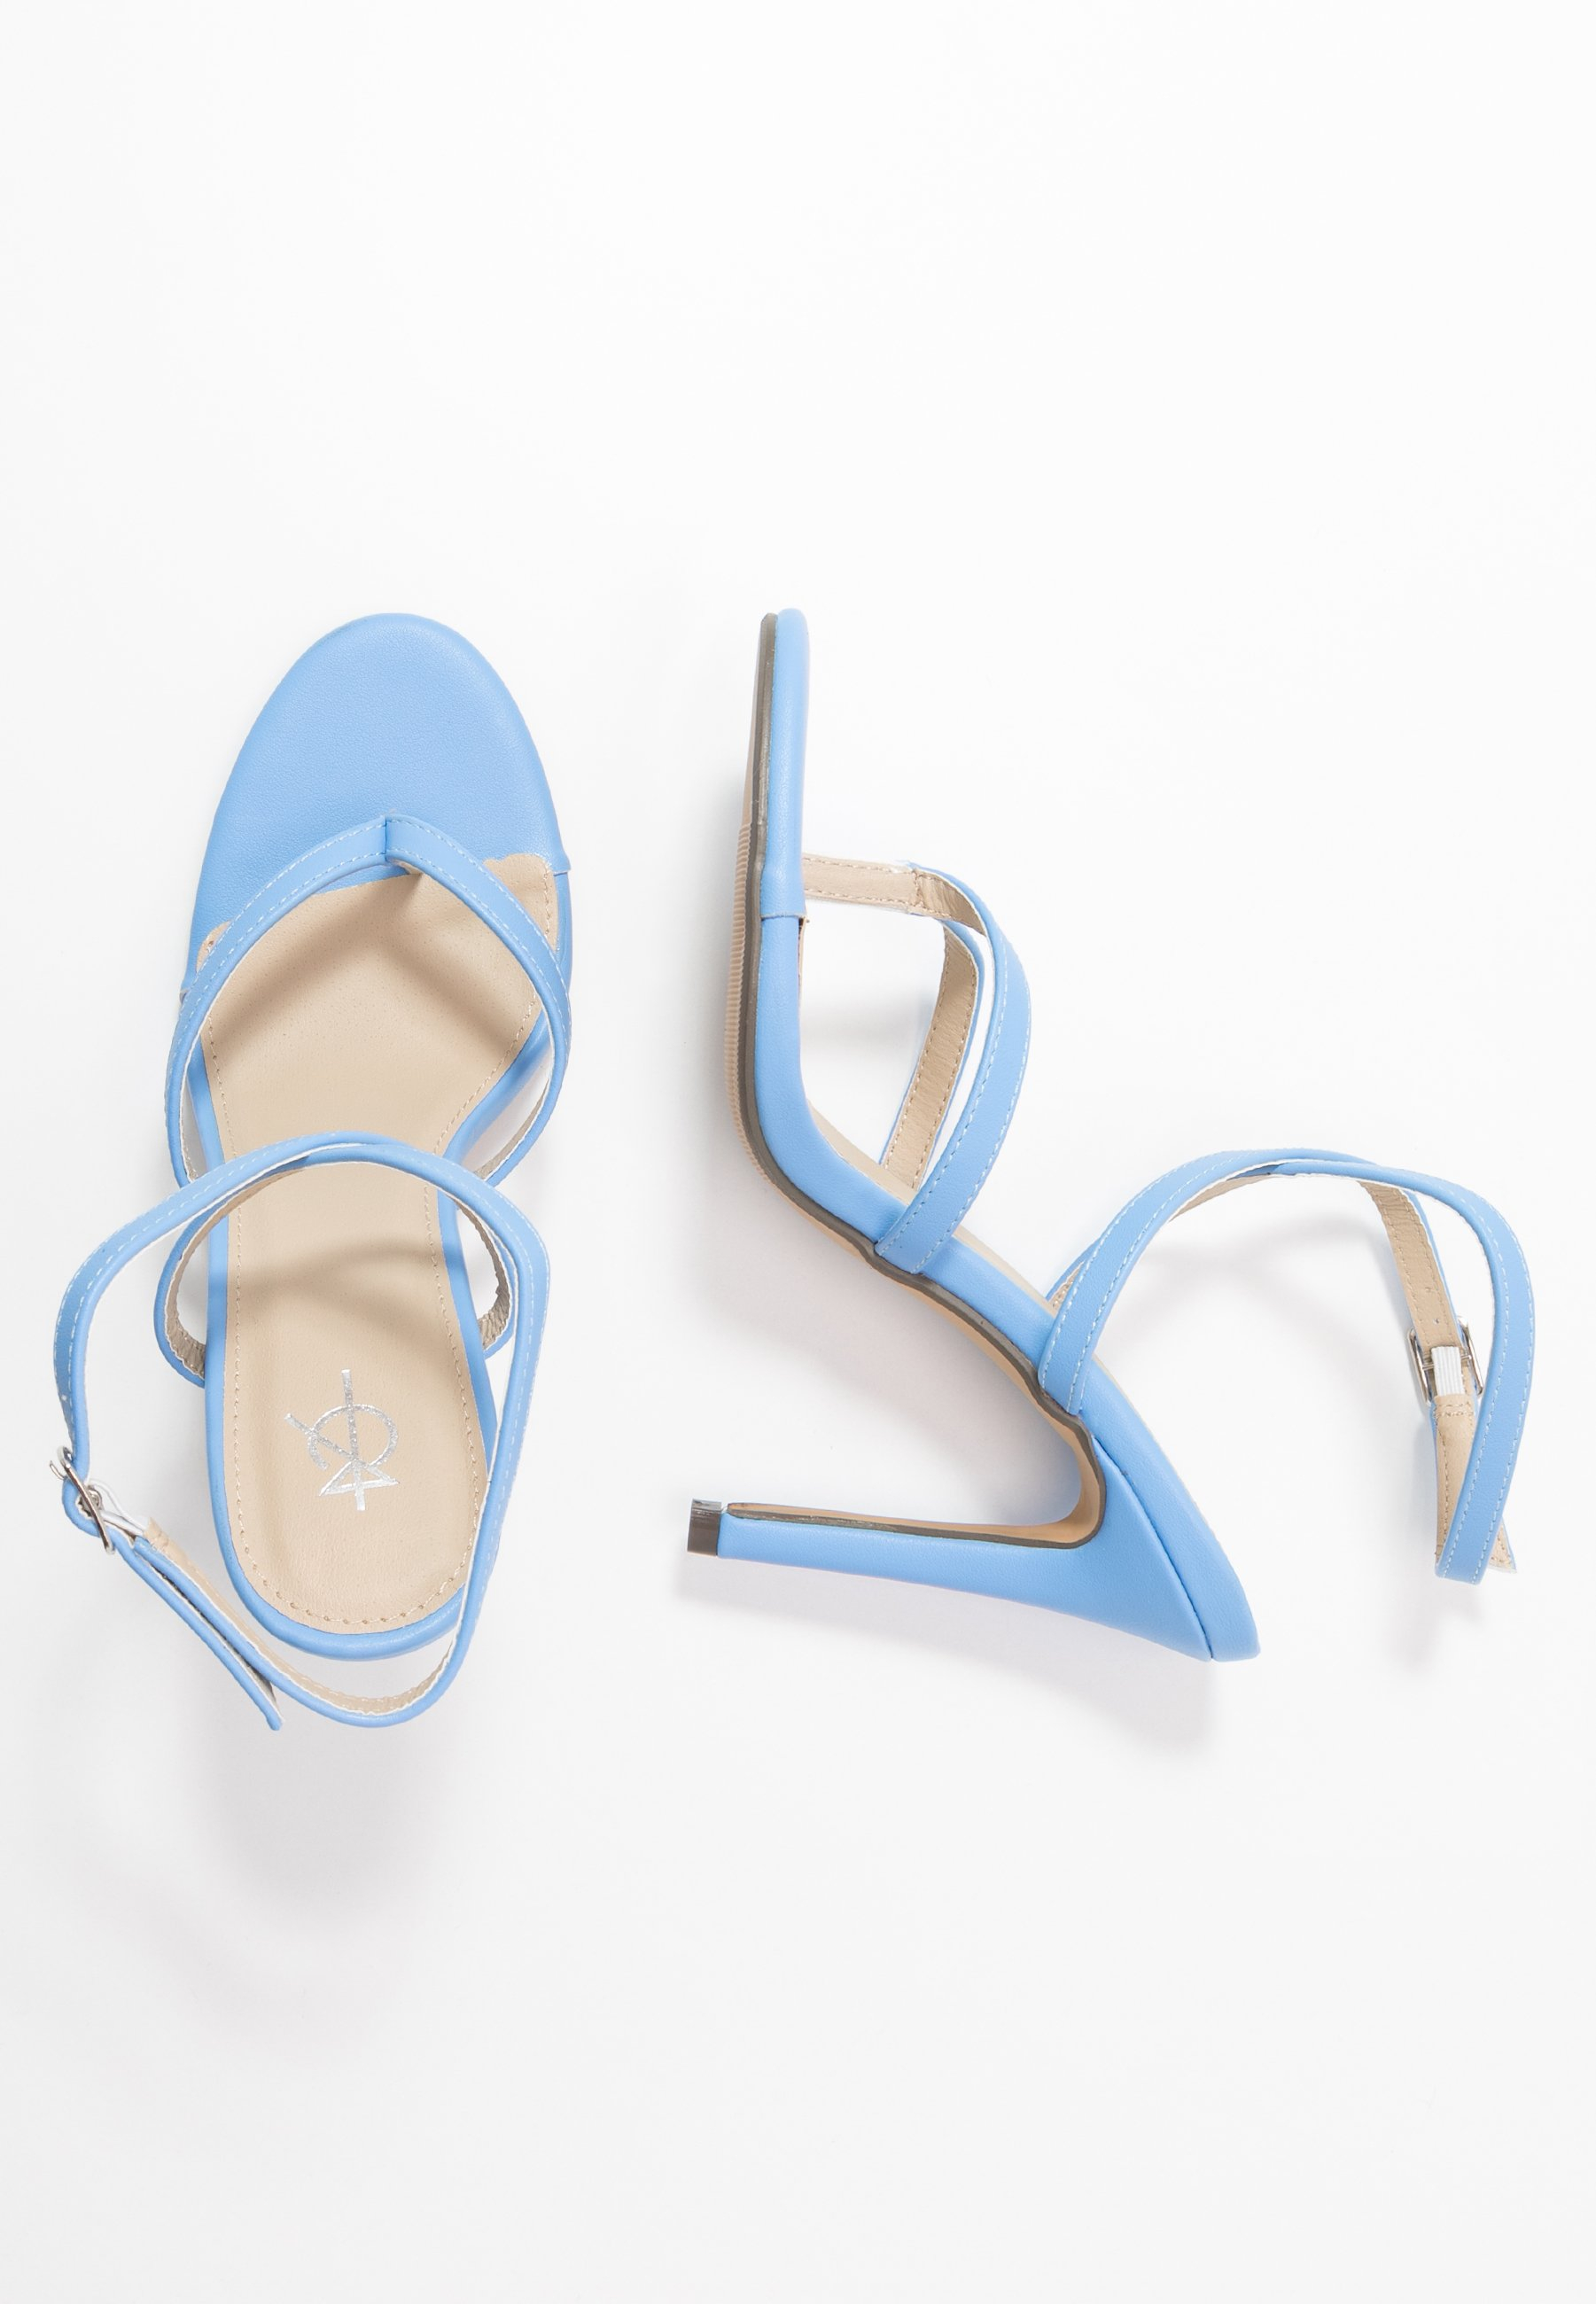 4th & Reckless - PENNY - High heeled sandals - blue